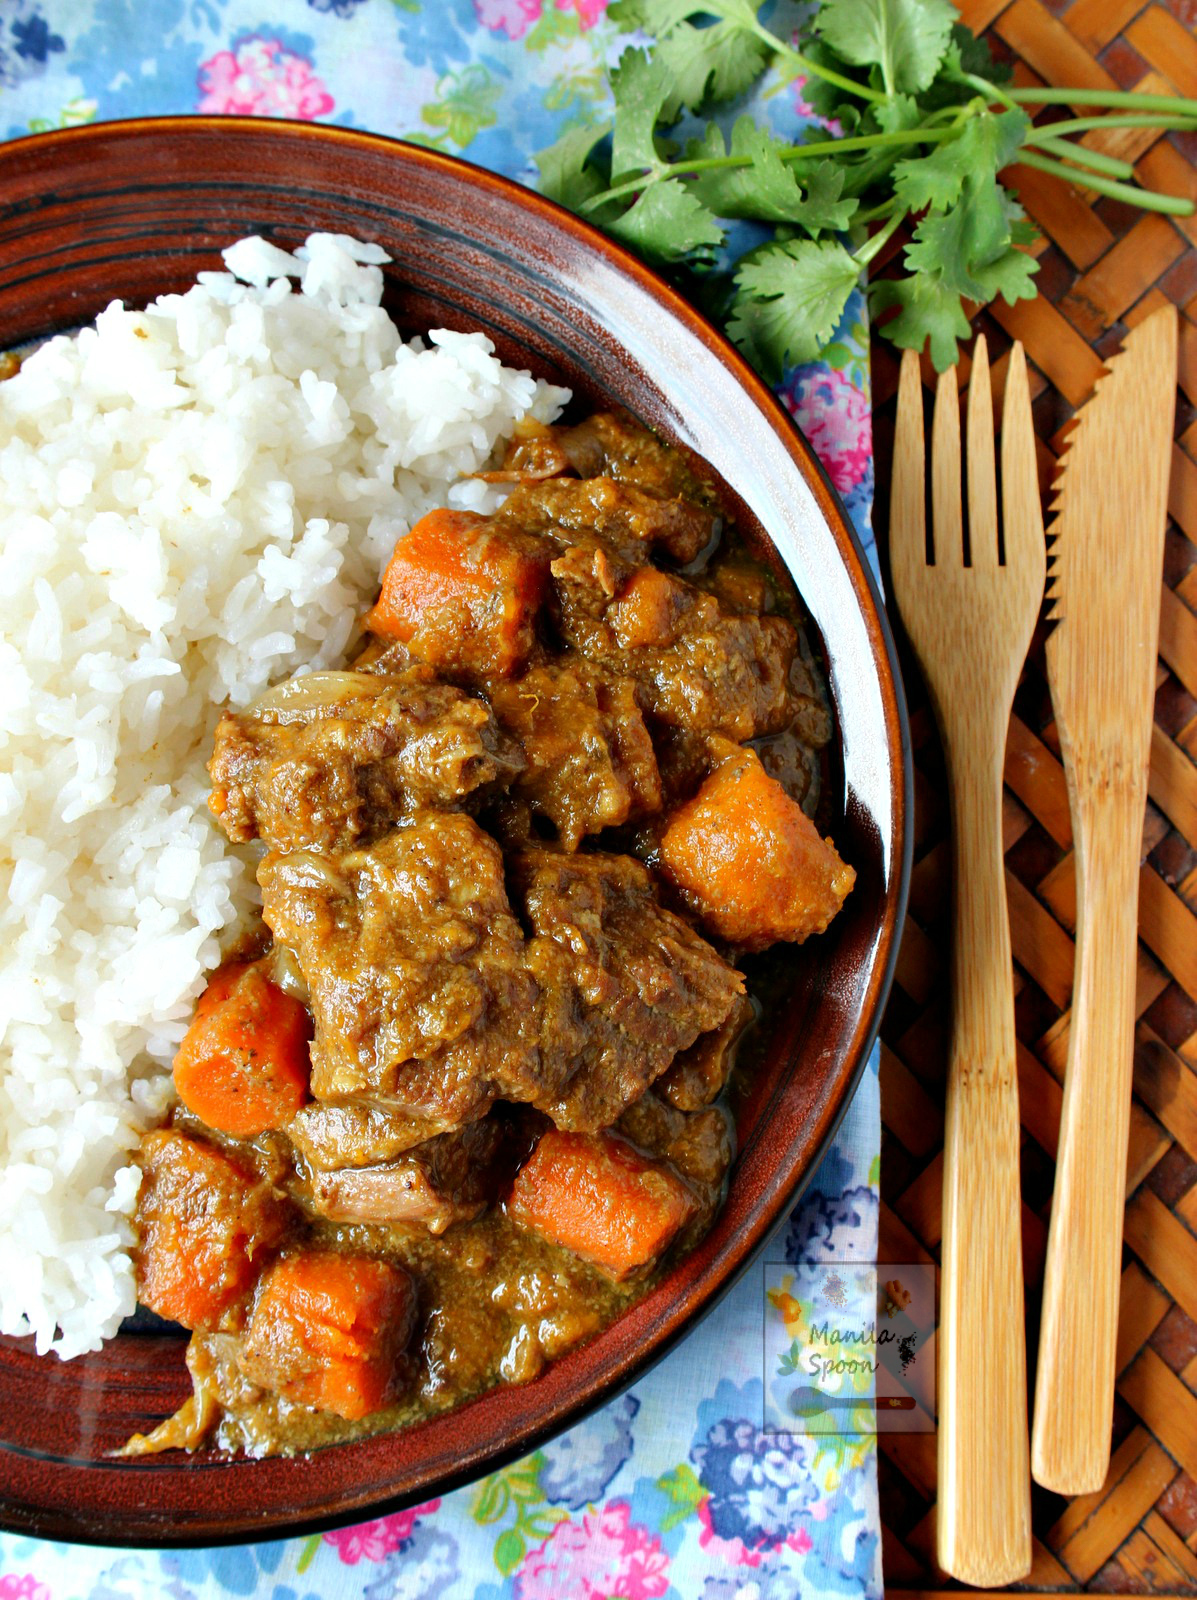 A hearty slow cooker stew with melt-in-your-mouth tender beef chunks in creamy coconut sauce flavored with curry powder and other spices. SLOW COOKER COCONUT CURRY BEEF STEW - deliciousness in every mouthful! #slowcooker #coconut #beef #curry